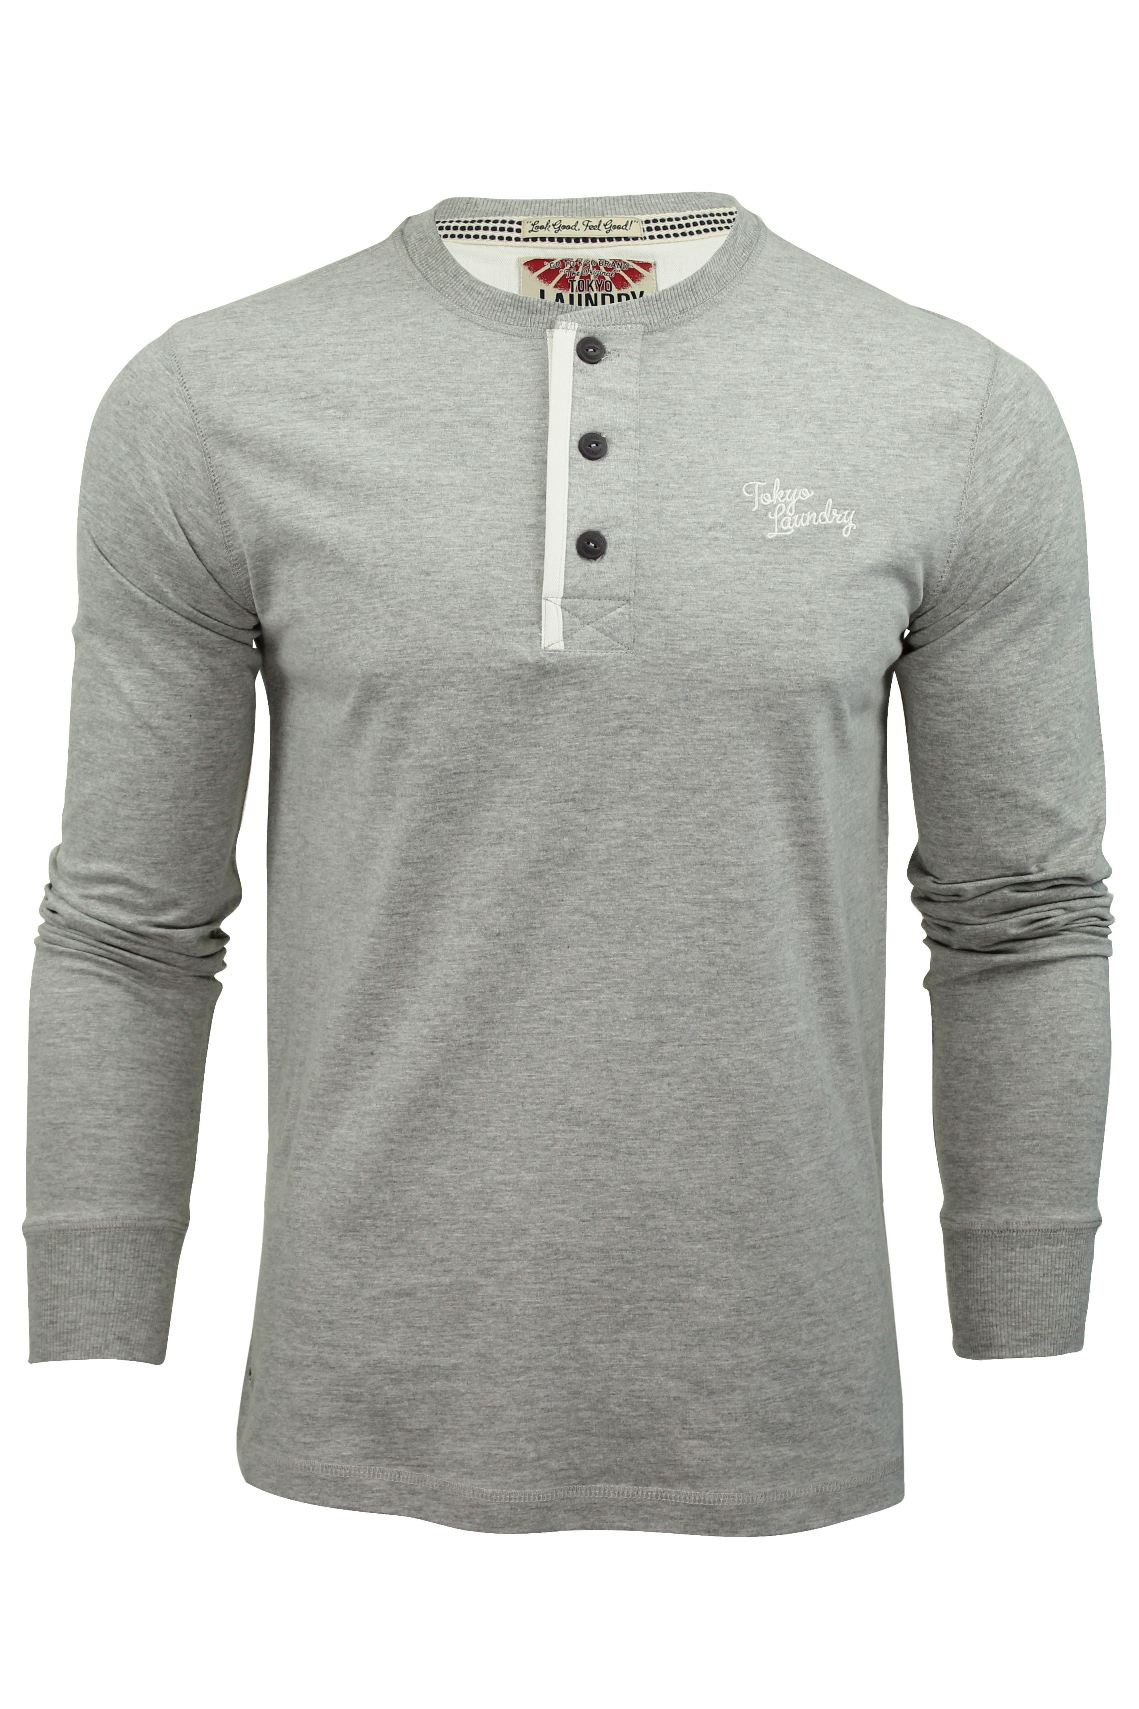 Mens long sleeved t shirt by tokyo laundry grandad neck ebay for Long sleeved white t shirts